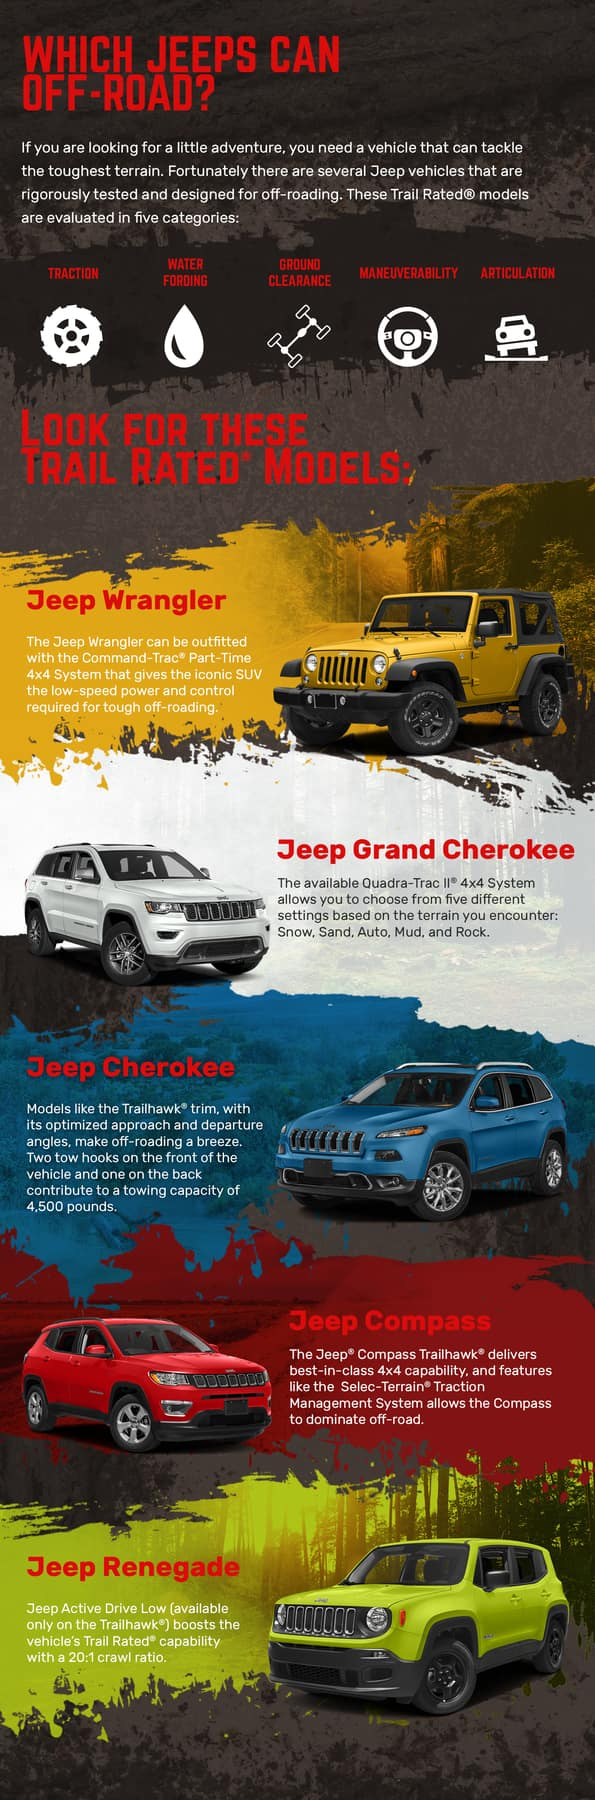 What Jeeps can Off-Road Infographic